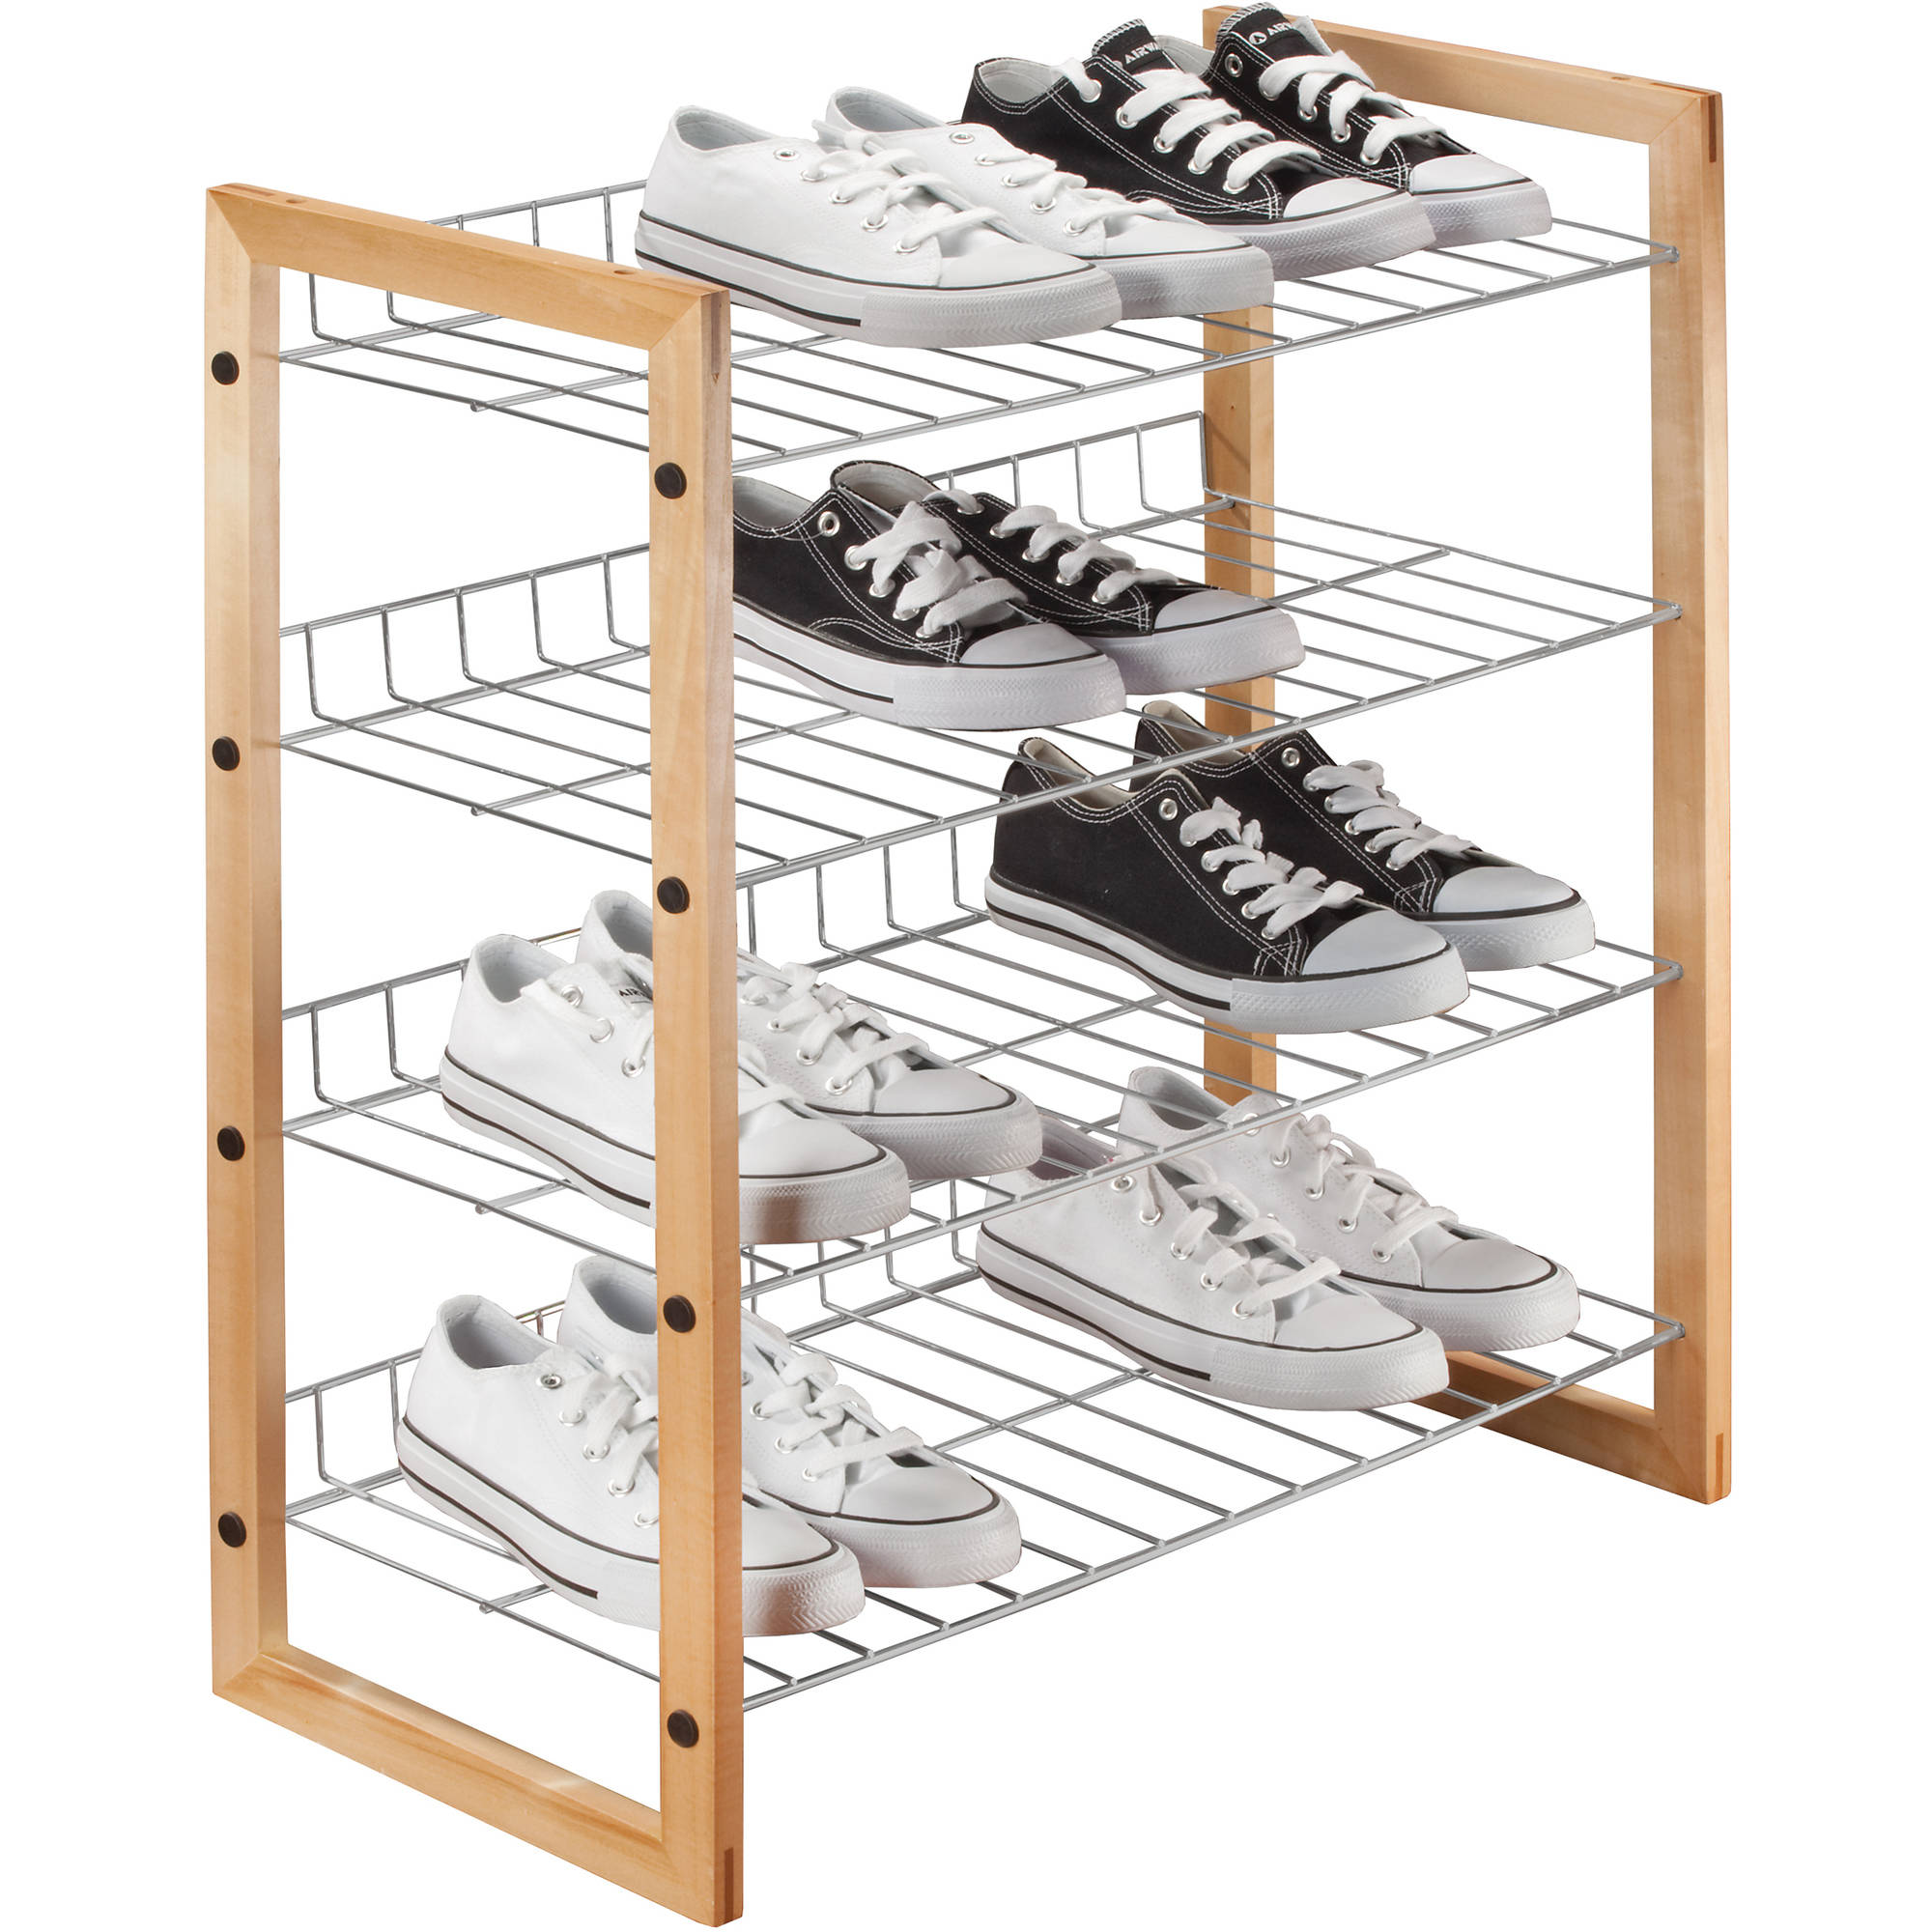 Simplify 4-Tier Wood Shoe Caddy, Multiple Colors